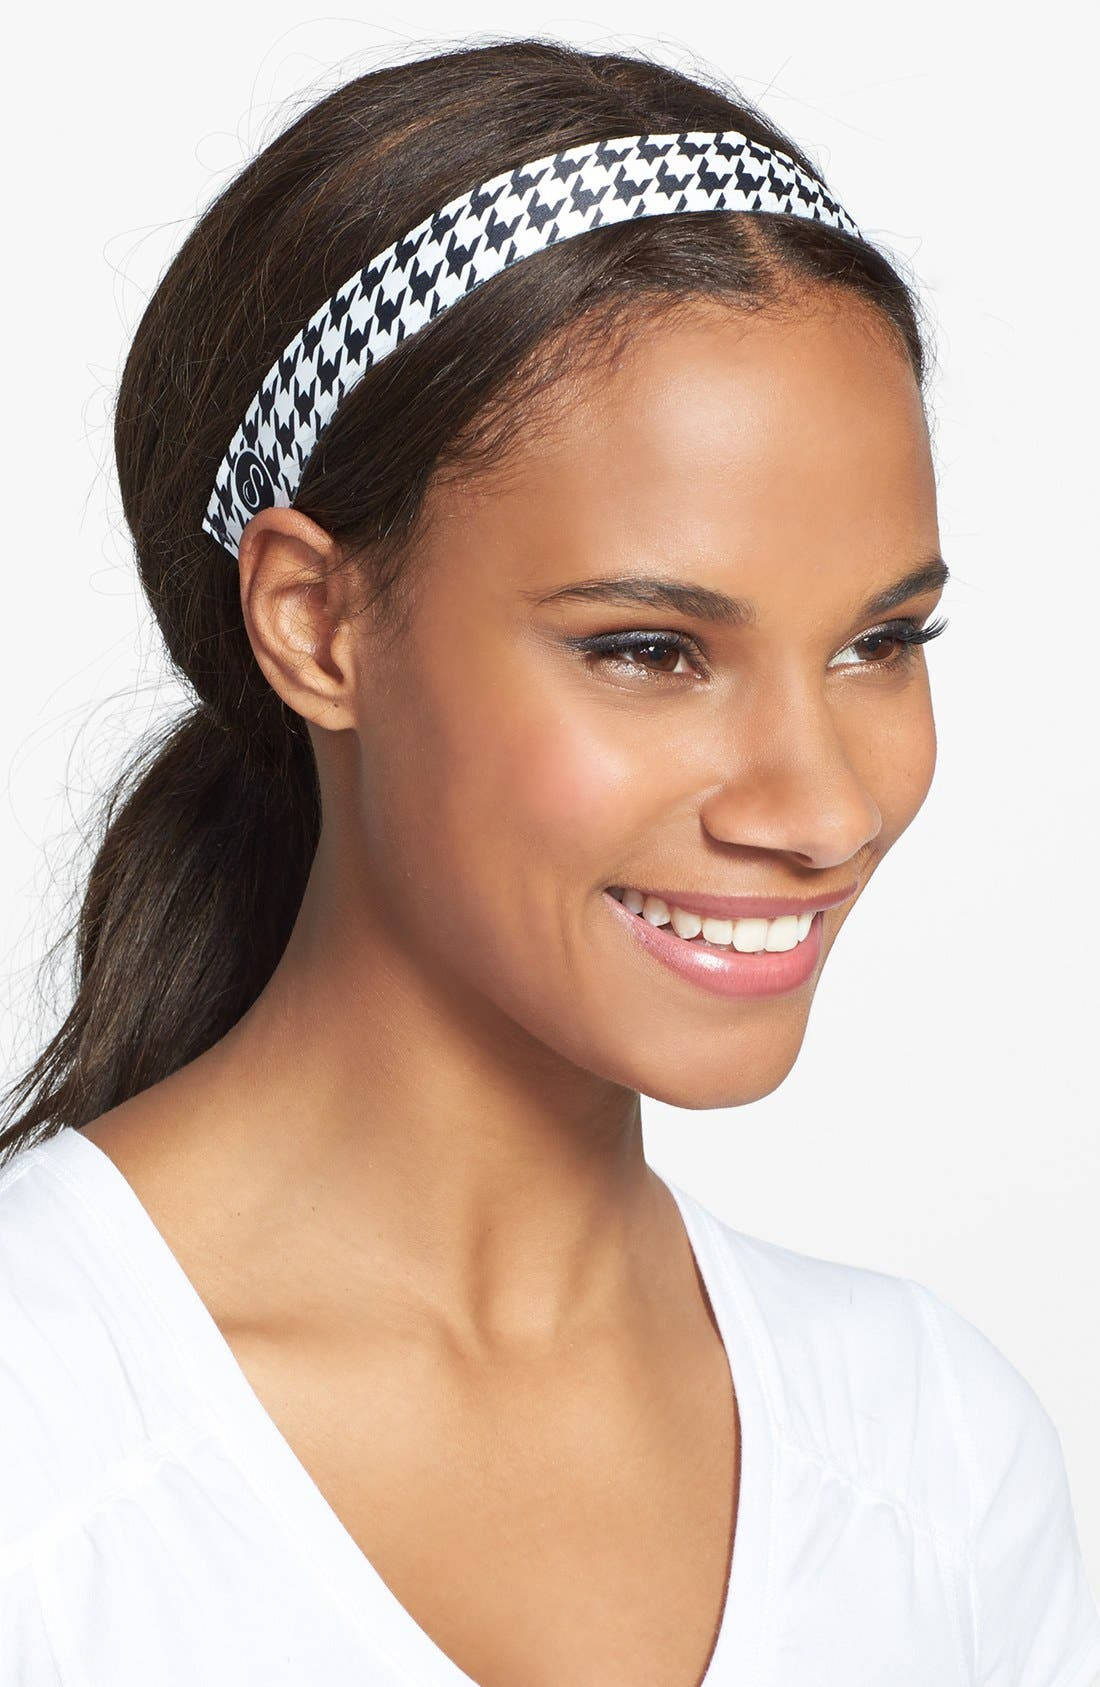 Alternate Image 1 Selected - Sweaty Bands 'Houndstooth' Head Wrap